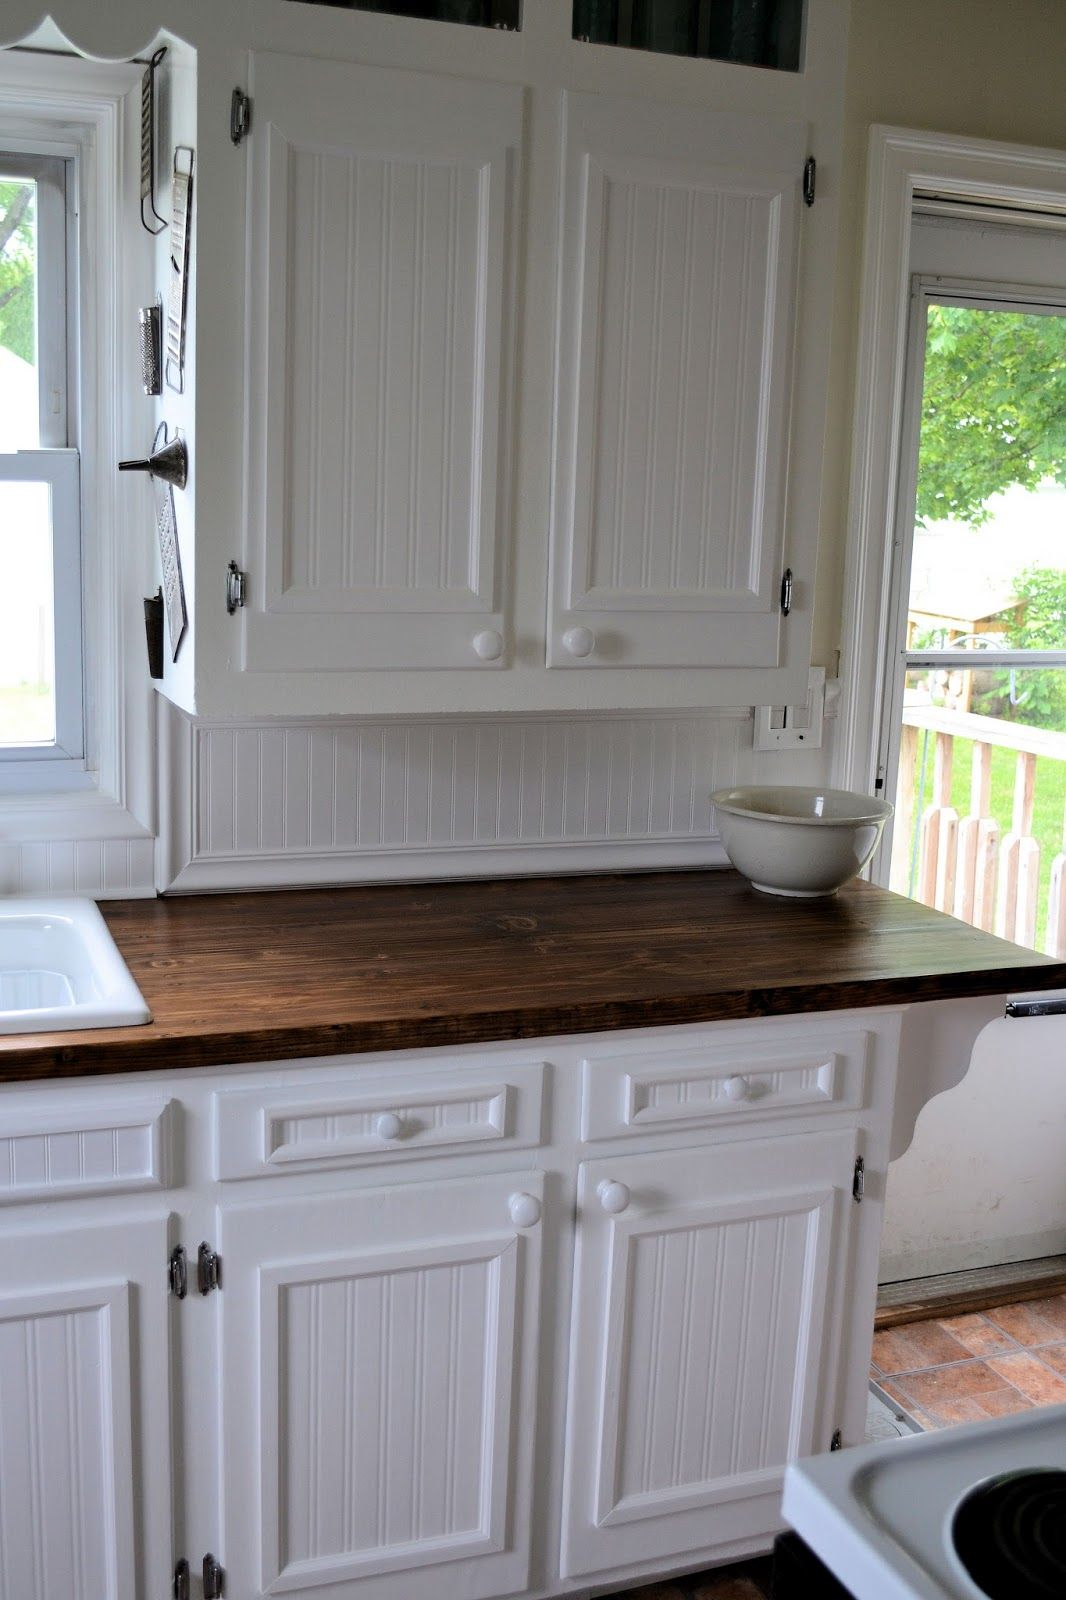 kitchens with stained wooden baseboards | We used chair ...